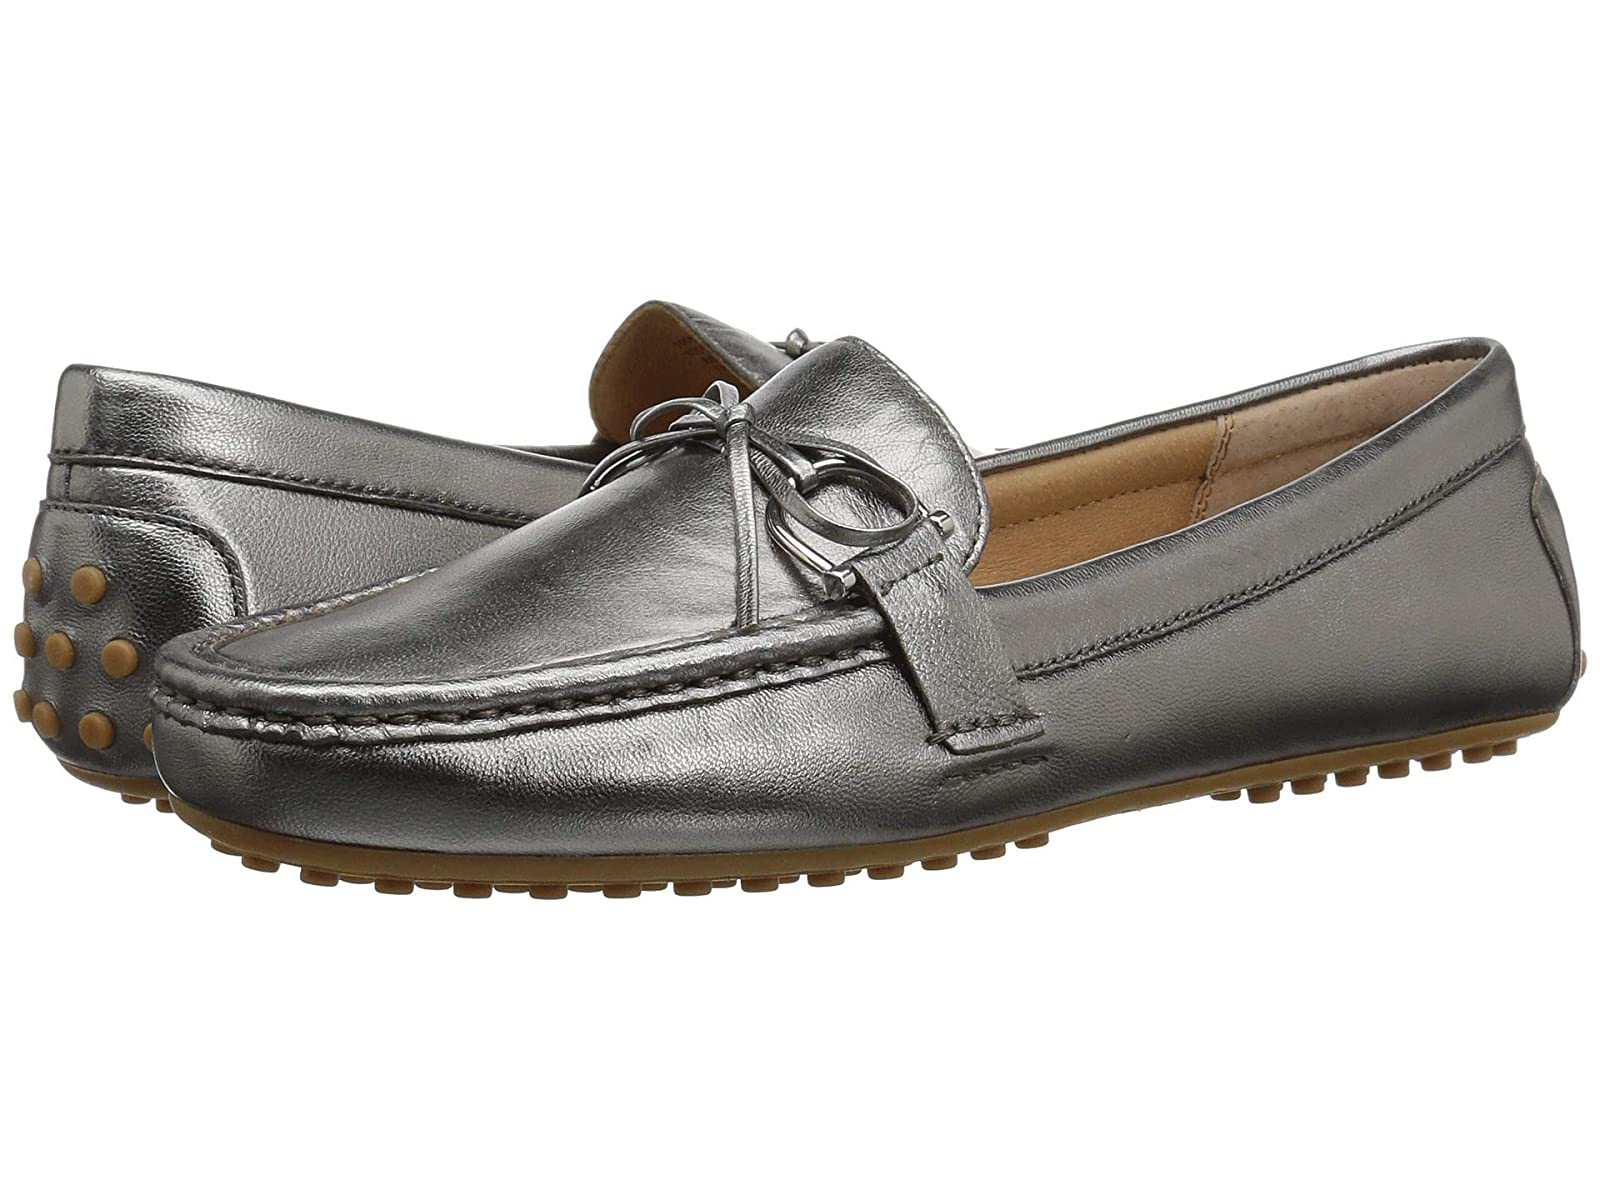 LAUREN Ralph Outlet-Men's/Women's Lauren Briley Moccasin Loafer-Sale Outlet-Men's/Women's Ralph 411843